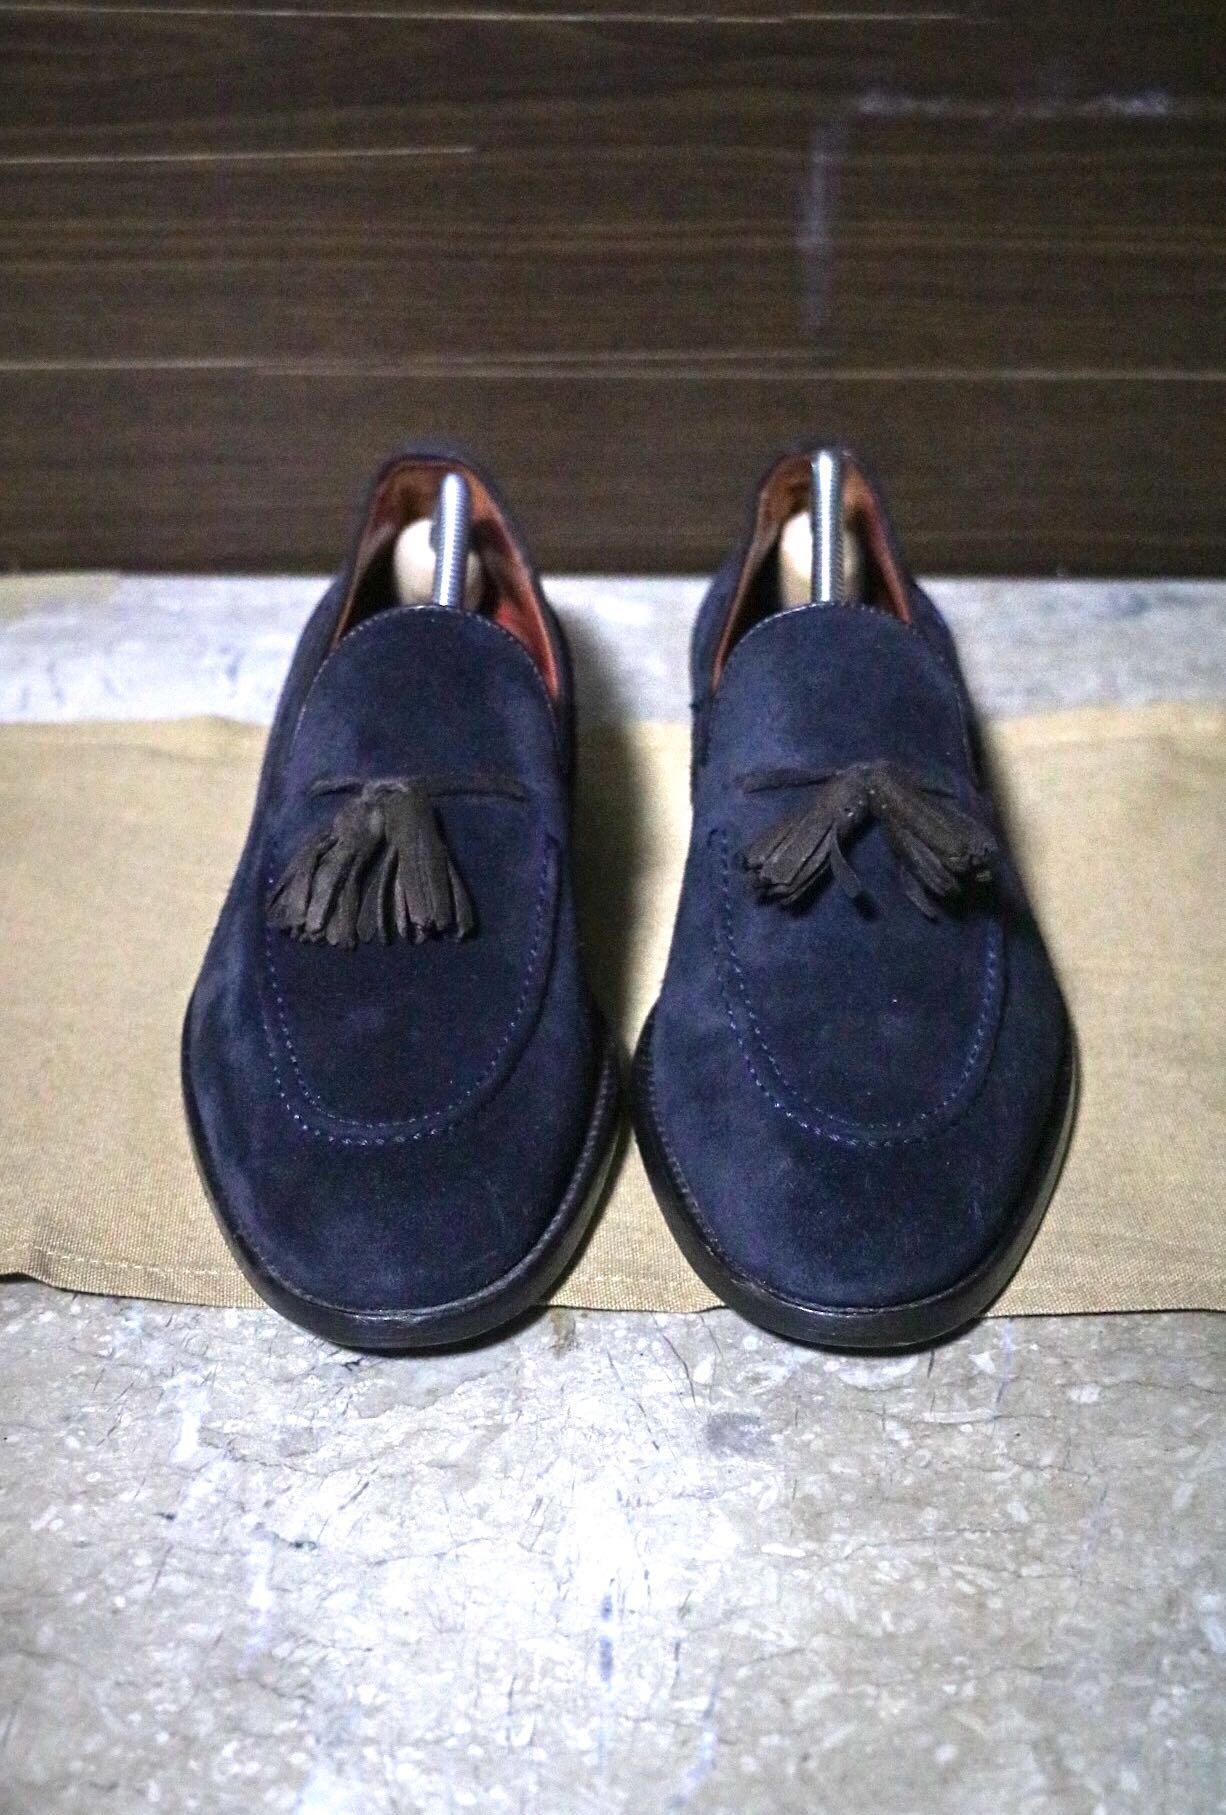 Massimo Dutti Tassel Loafers Cole Haan Bass Rockport